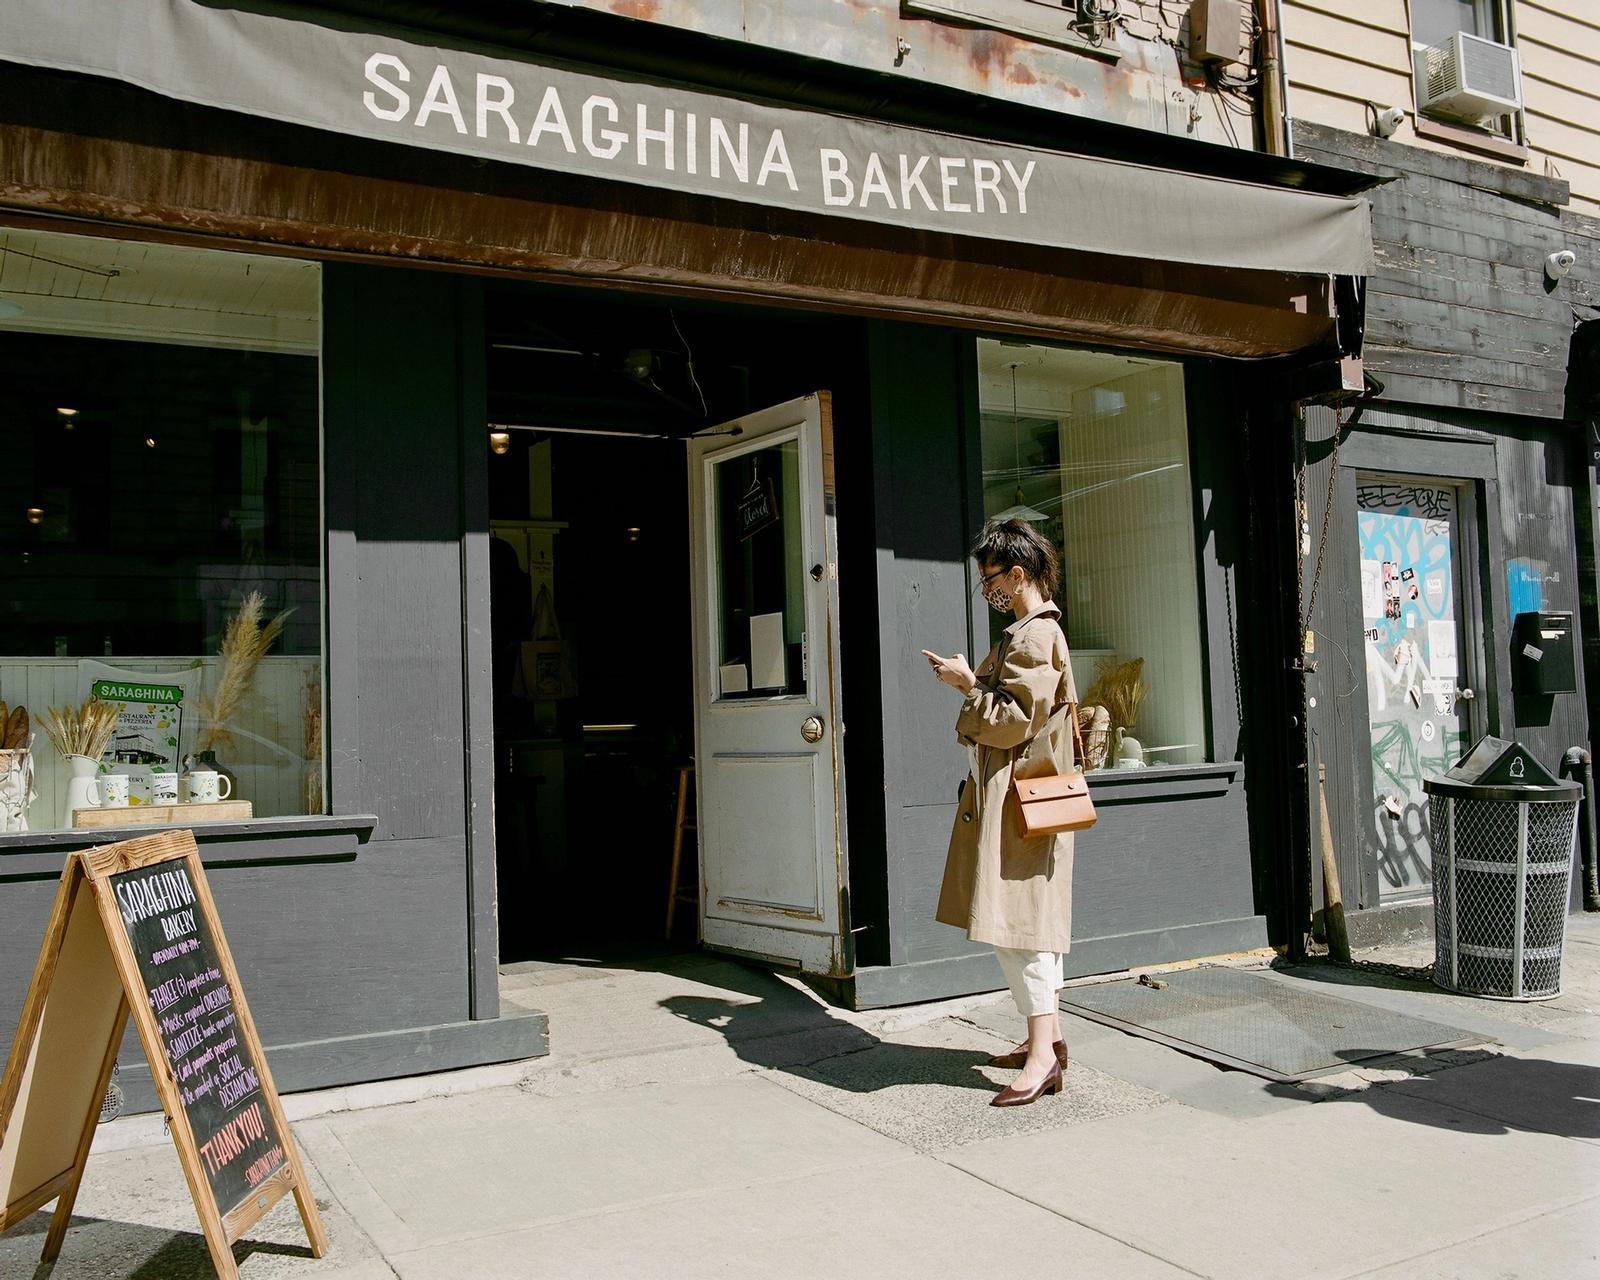 Anna Polonsky in front of SARAGHINA BAKERY